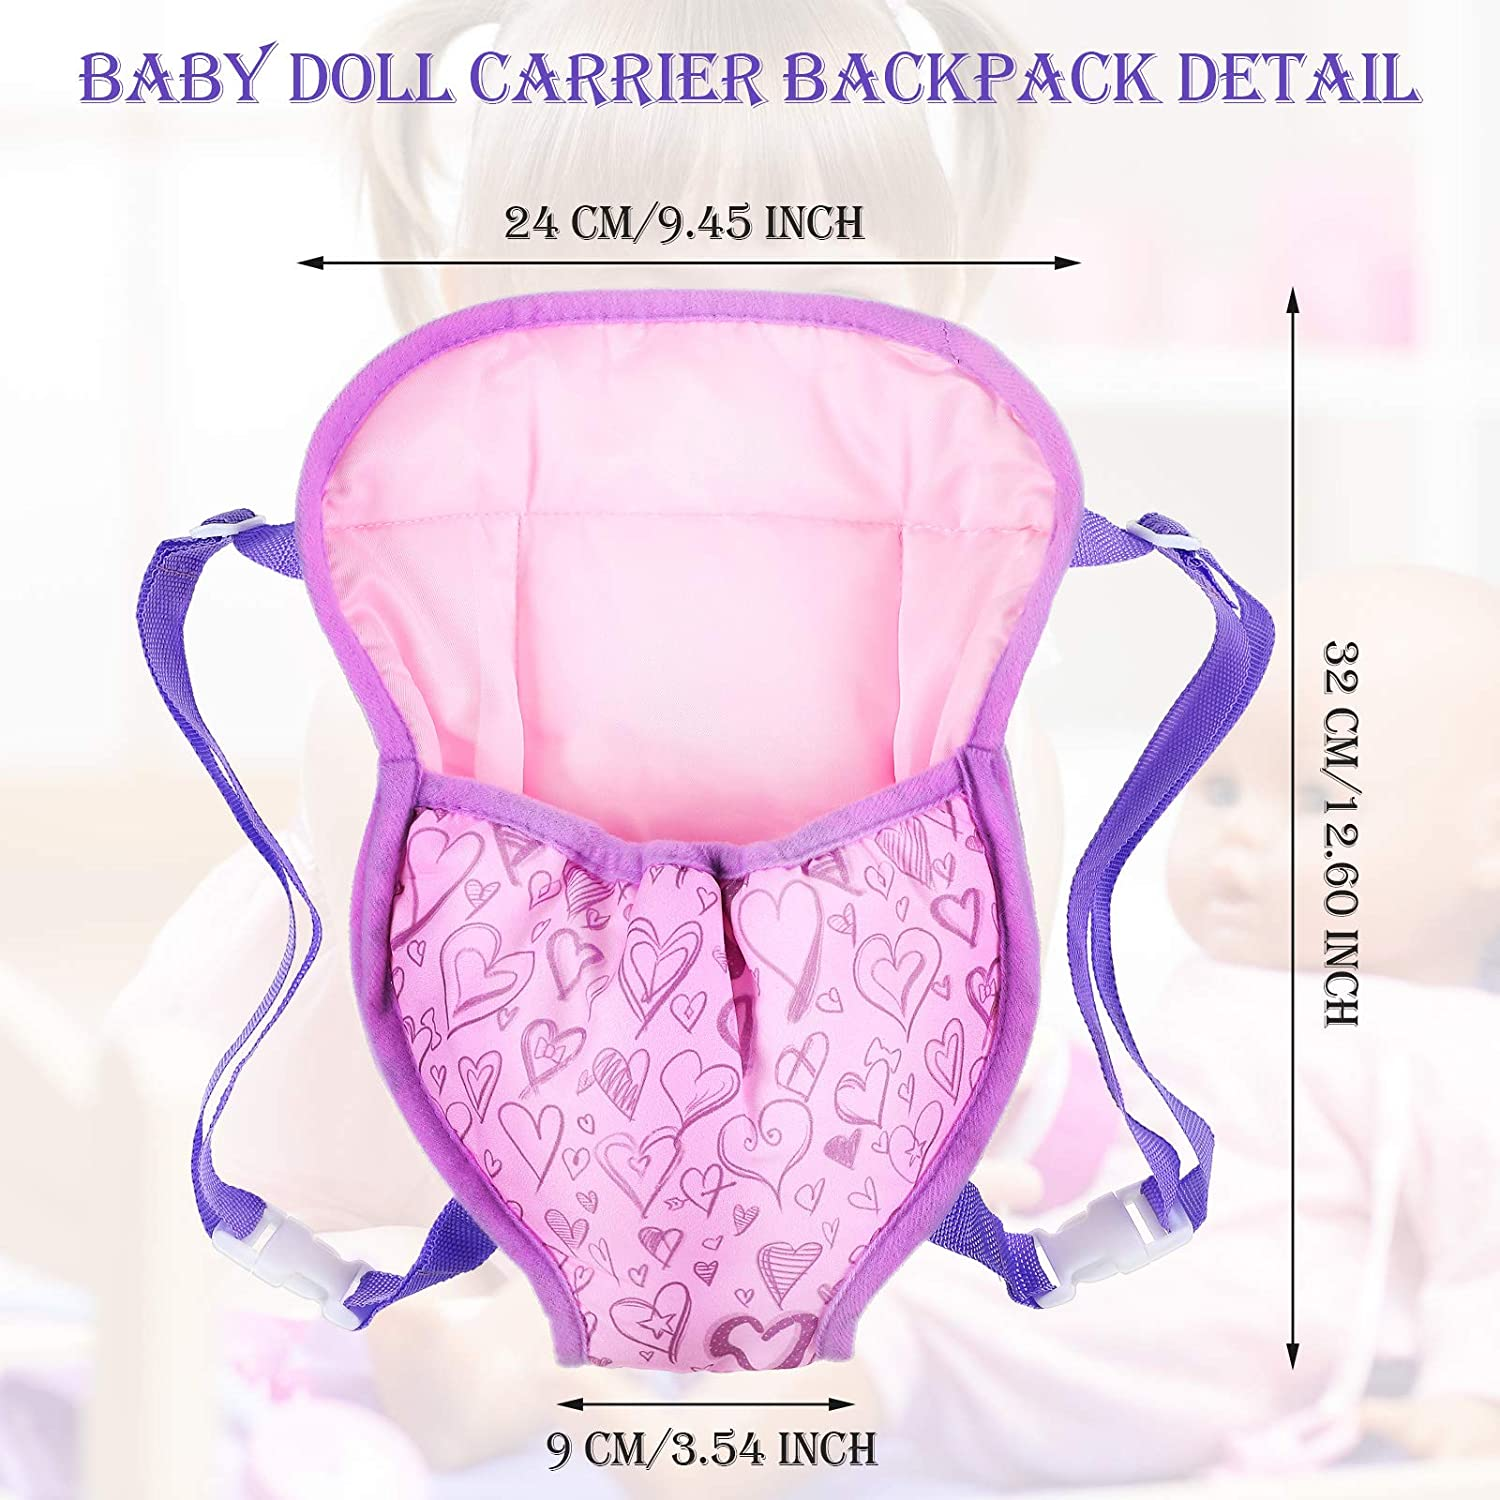 2 Pieces Baby Doll Carrier Backpacks Doll Portable Bags Doll Carrier Front Storage Bags with Straps Doll Accessories Fit for Dolls from 14 to 18 Inches